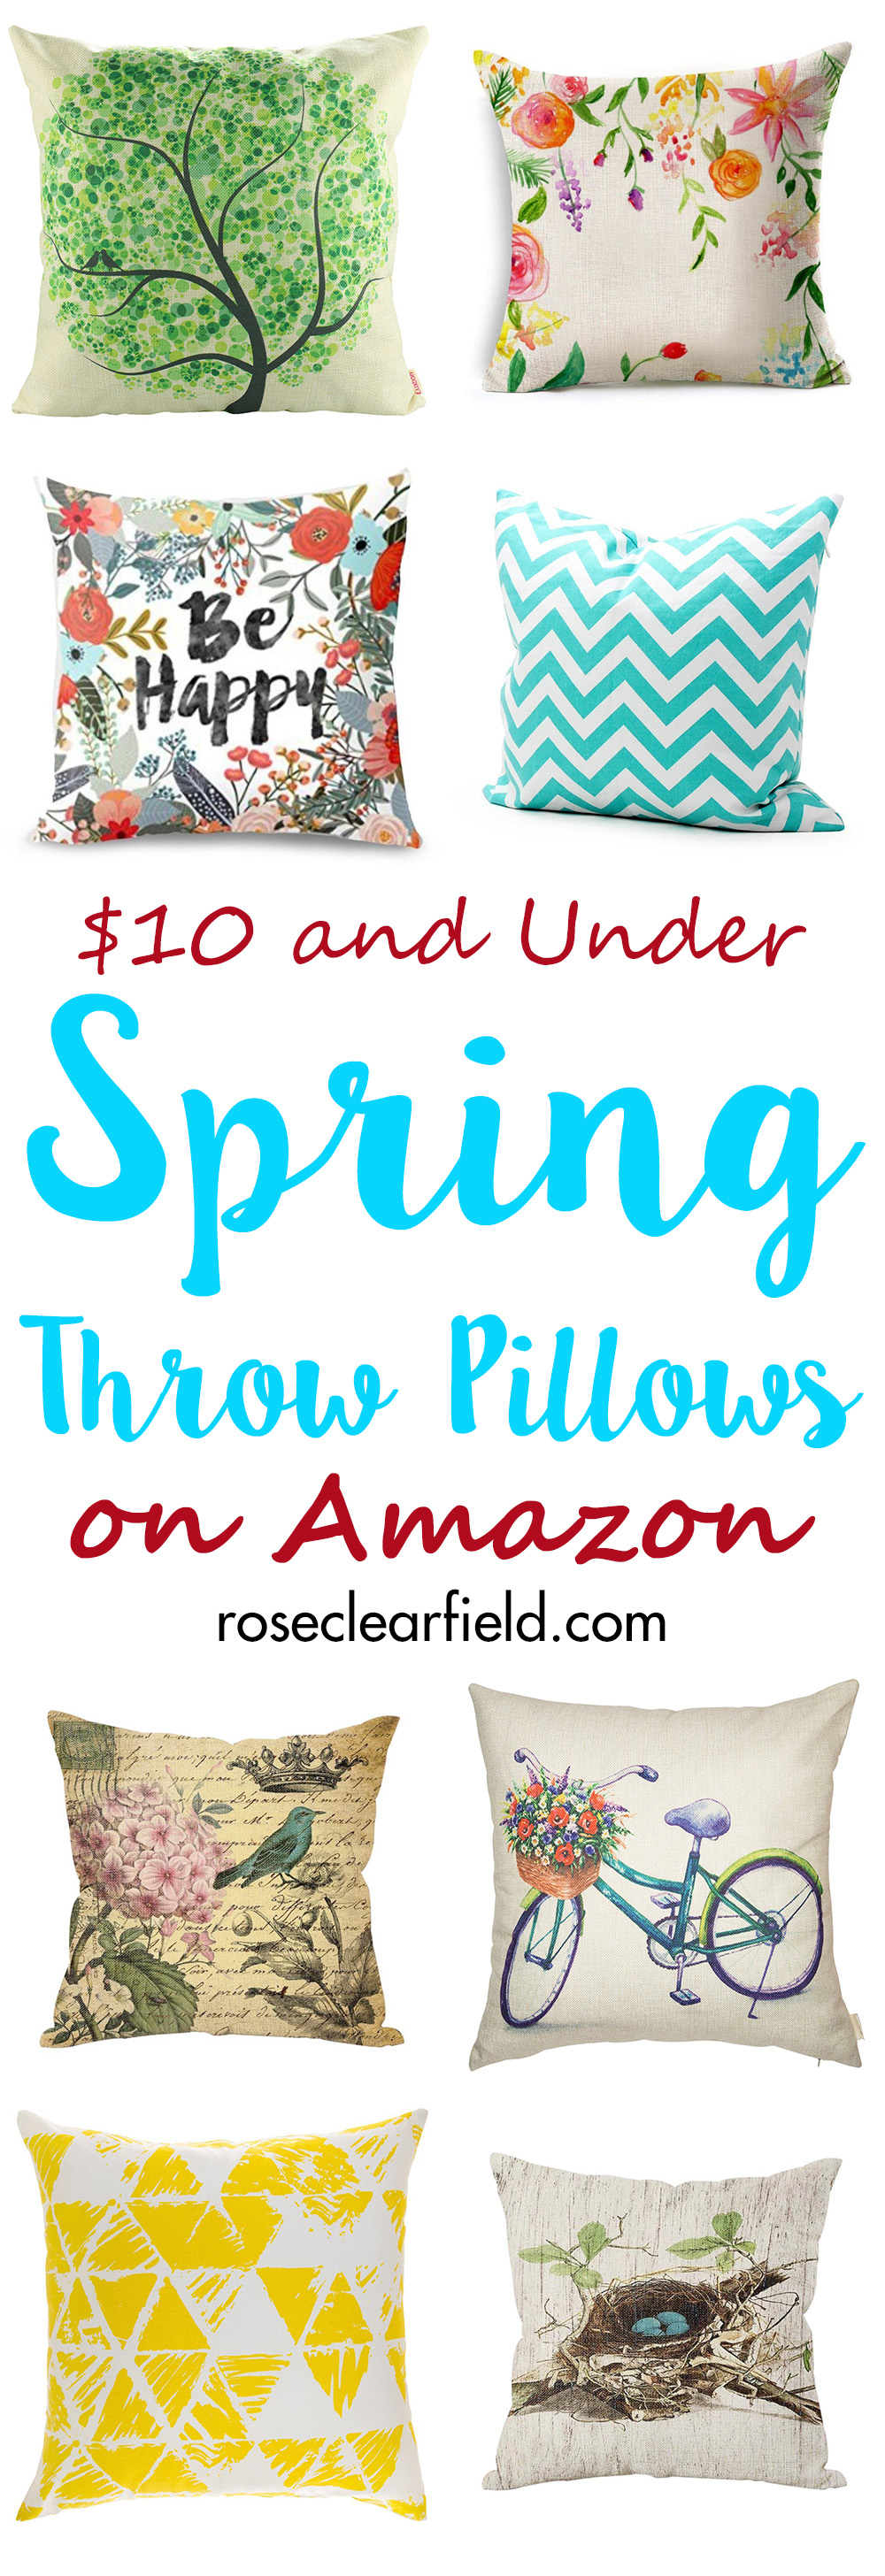 $10 and Under Spring Throw Pillows on Amazon | http://www.roseclearfield.com